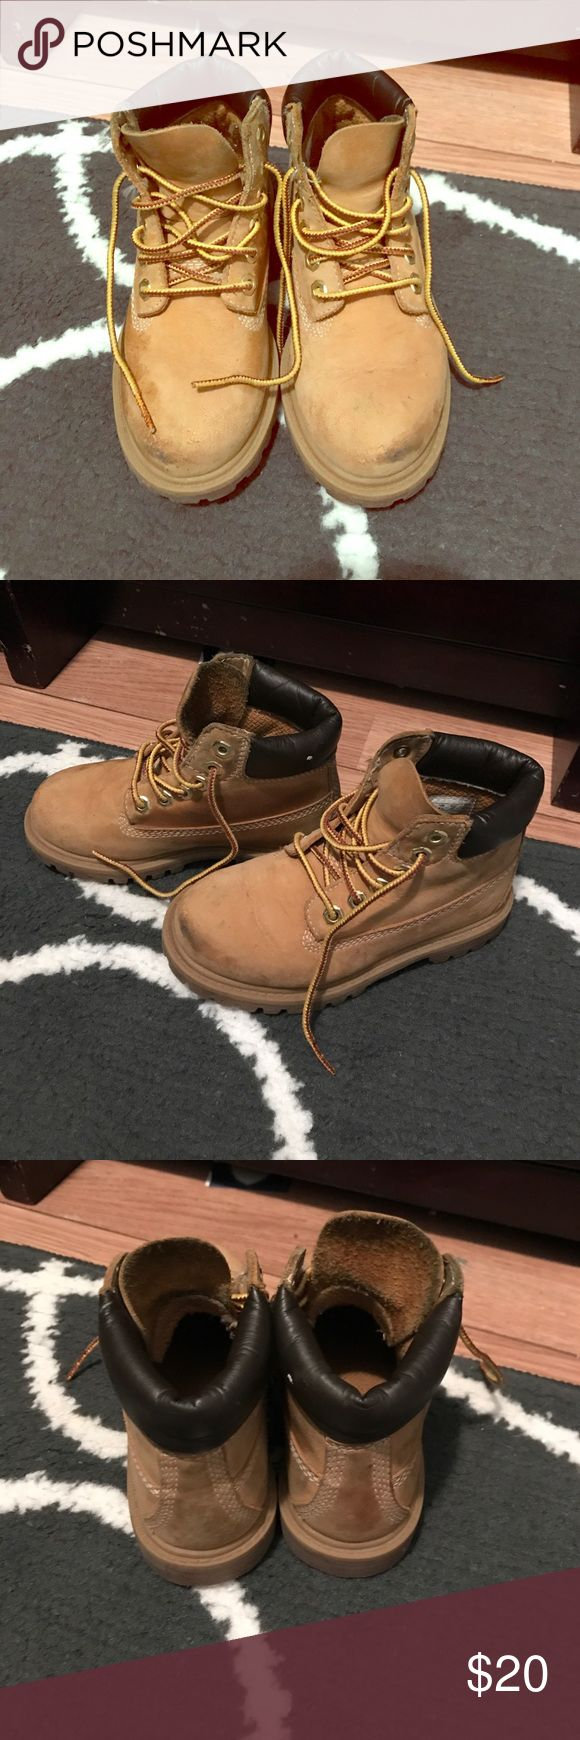 Boy's Timberland boots Authentic toddler boy's Timberland boots size 10. Does have some wear to them but they still have a lot of life left in them. Timberland Shoes Boots